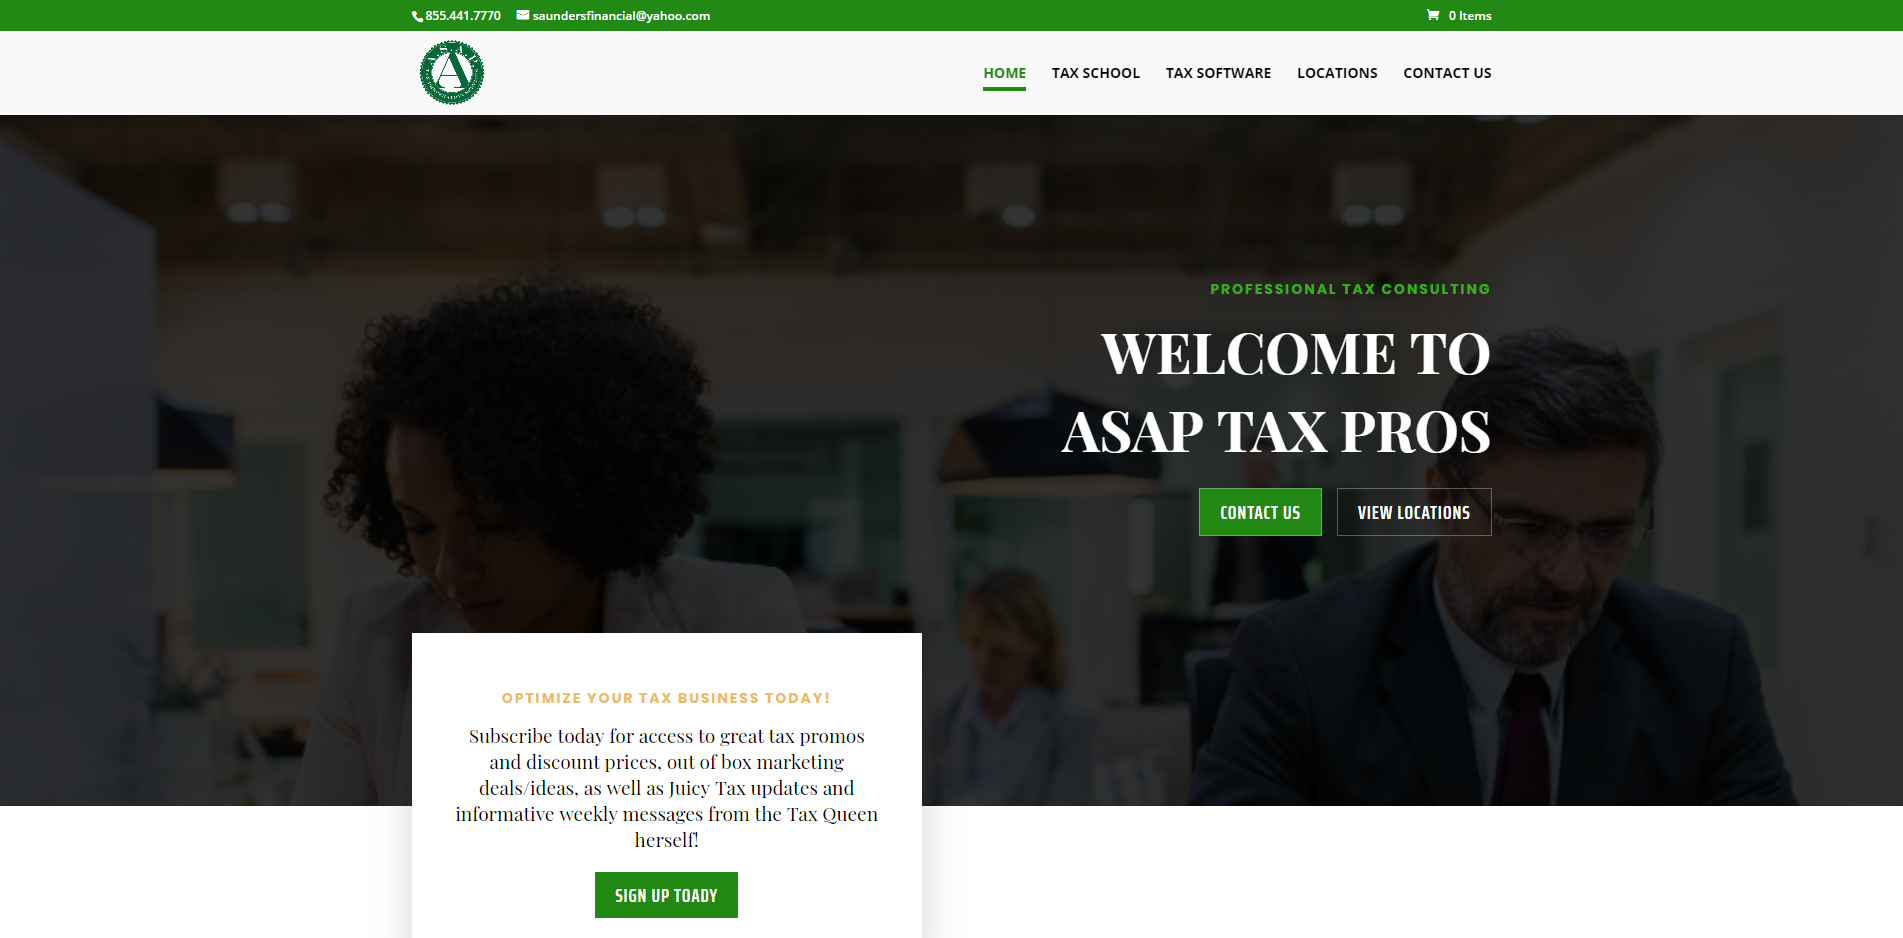 ASAP Tax Pros Get Paid Today (2)